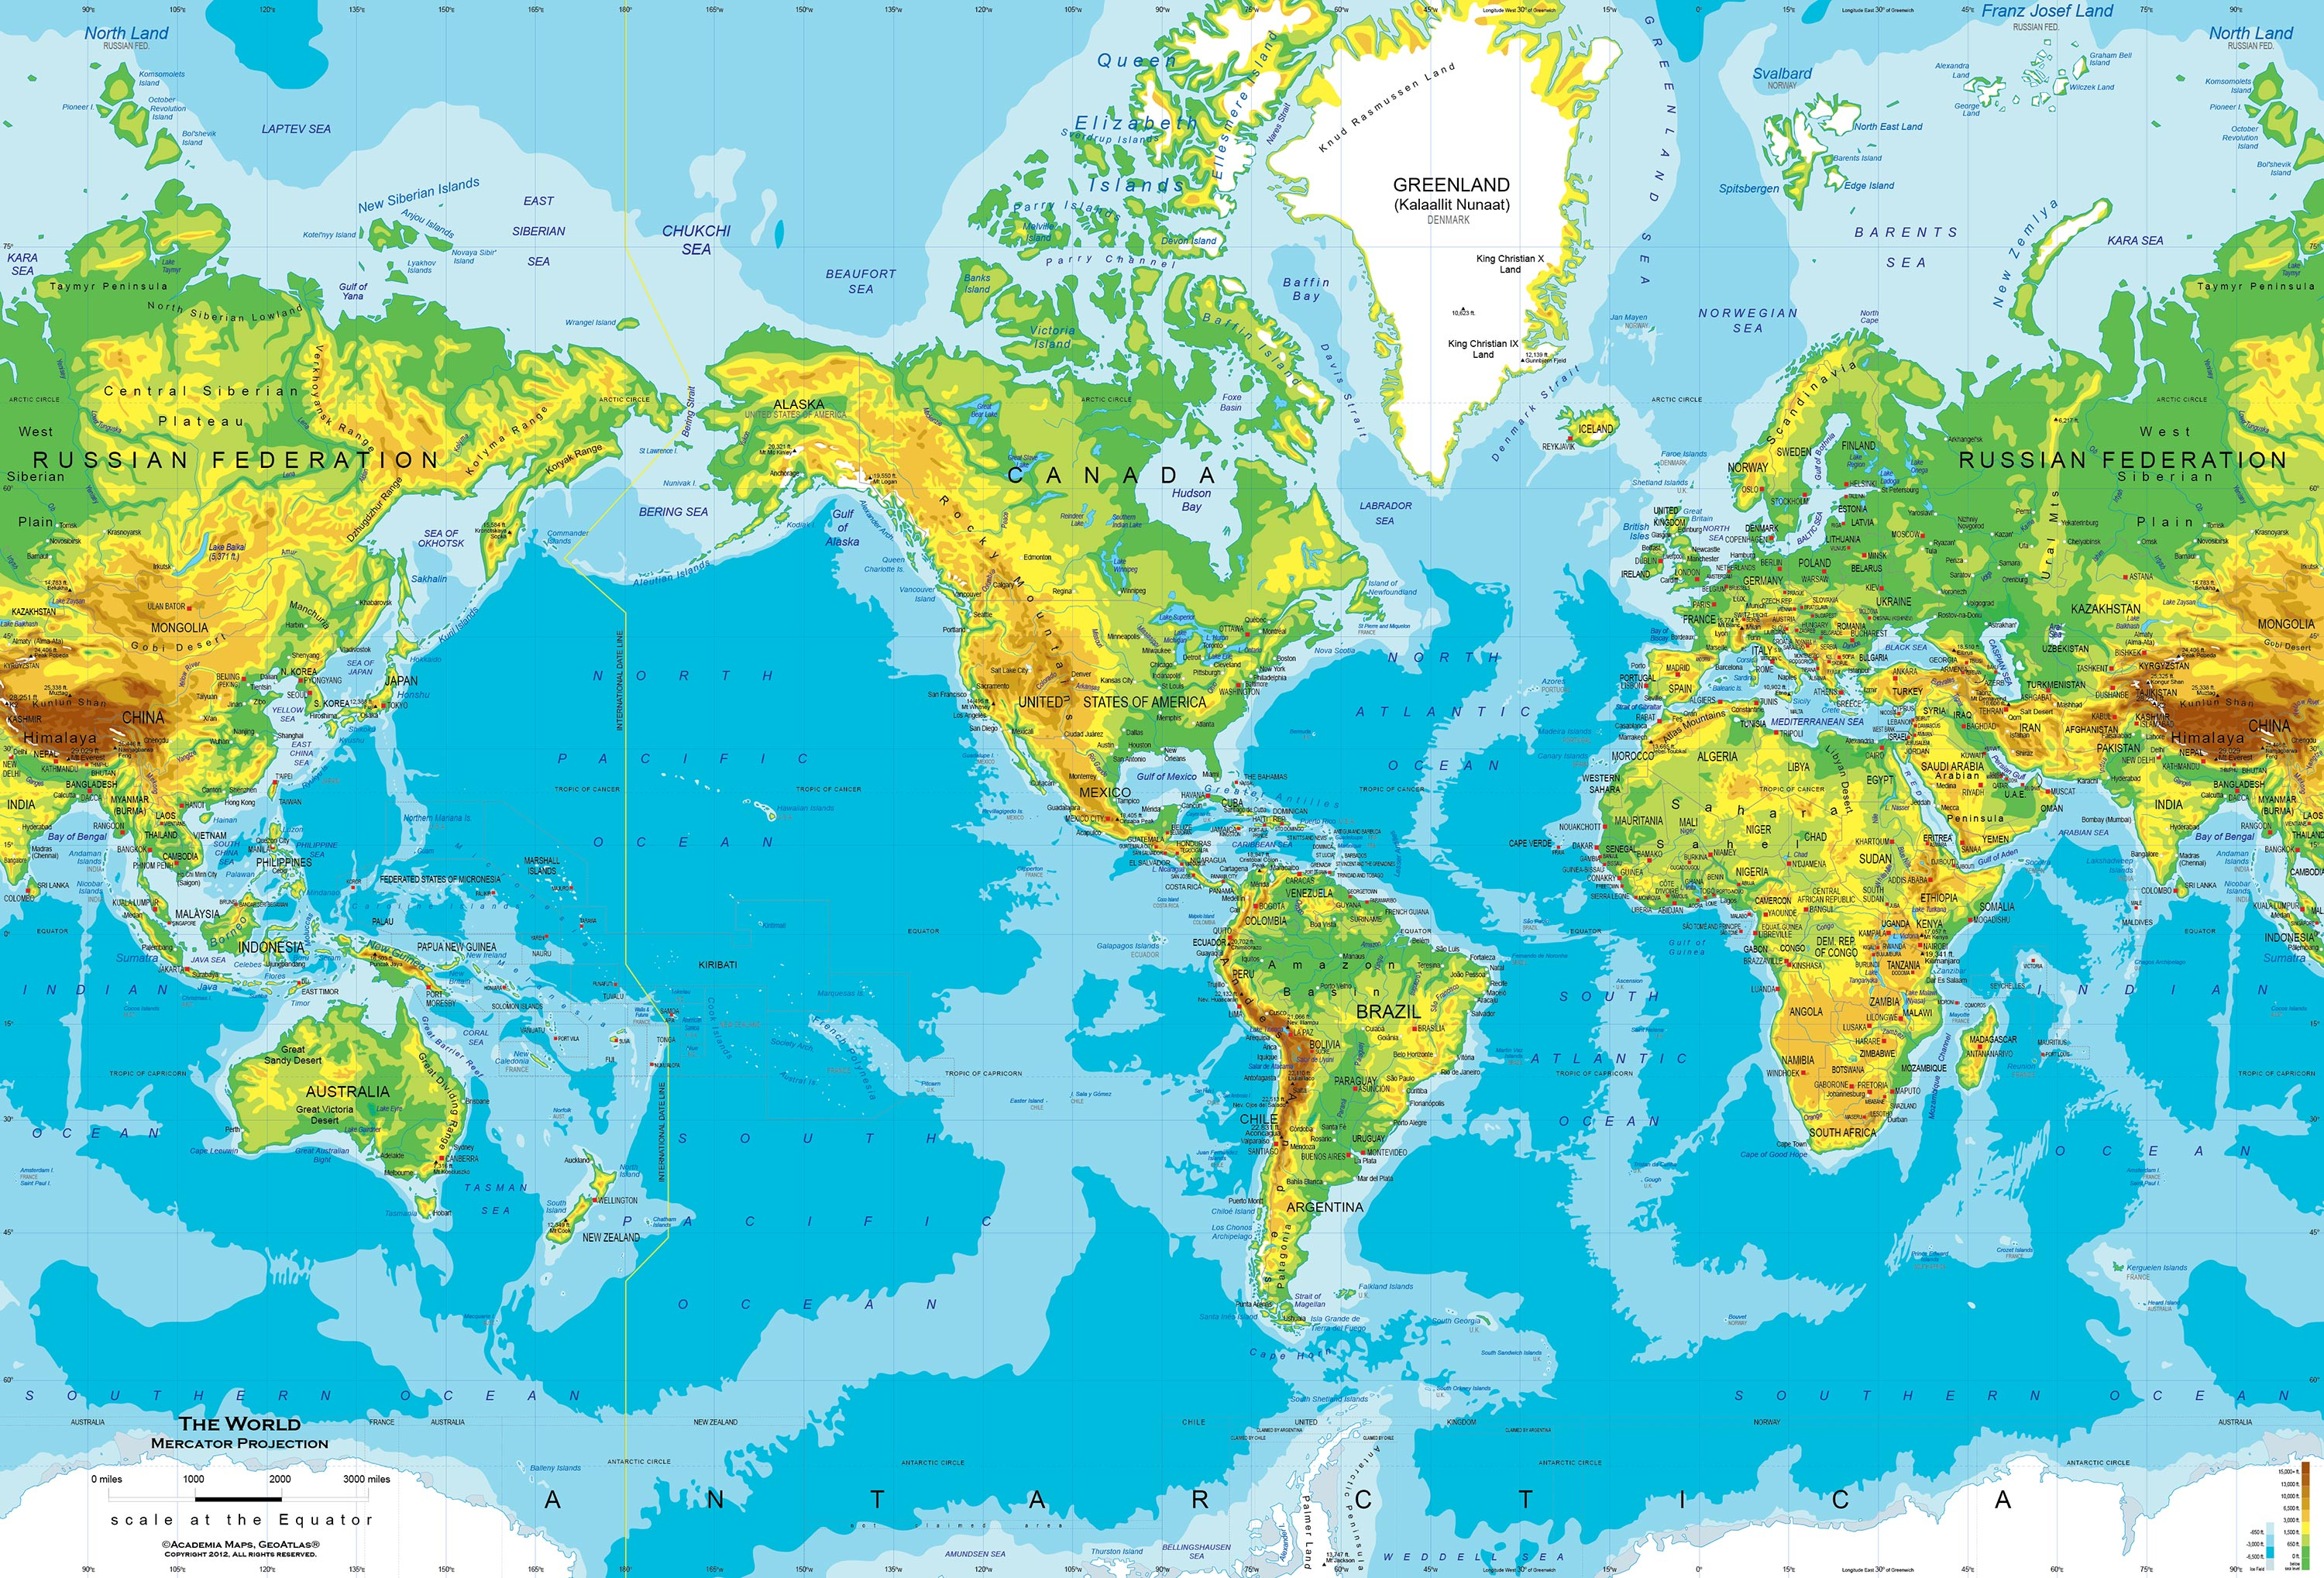 Gall Peters Projection World Map.About The Upside Down Map Of The World Sacredmargins